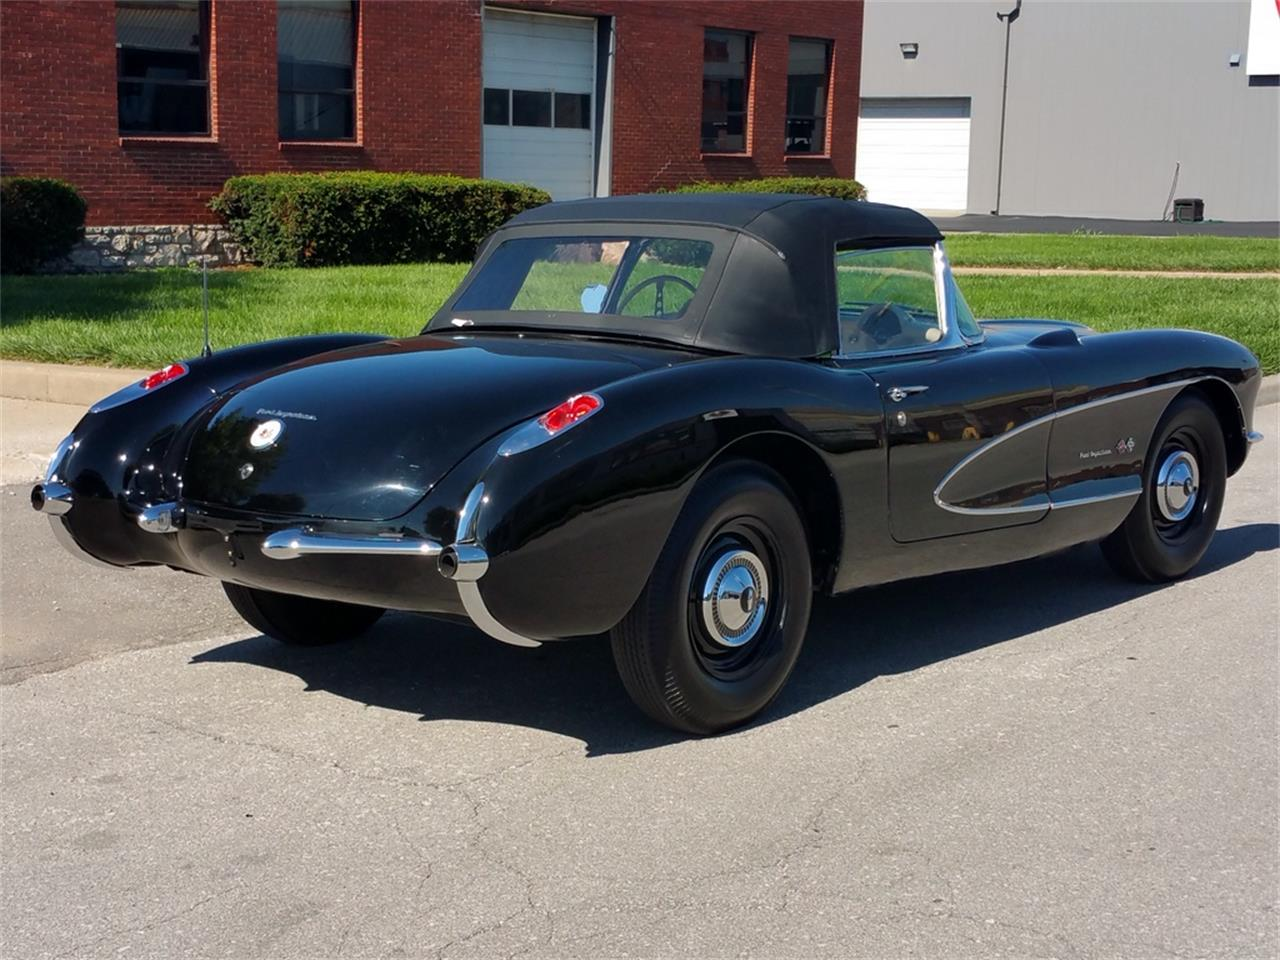 Large Picture of Classic '57 Chevrolet Corvette located in Missouri - MO1R